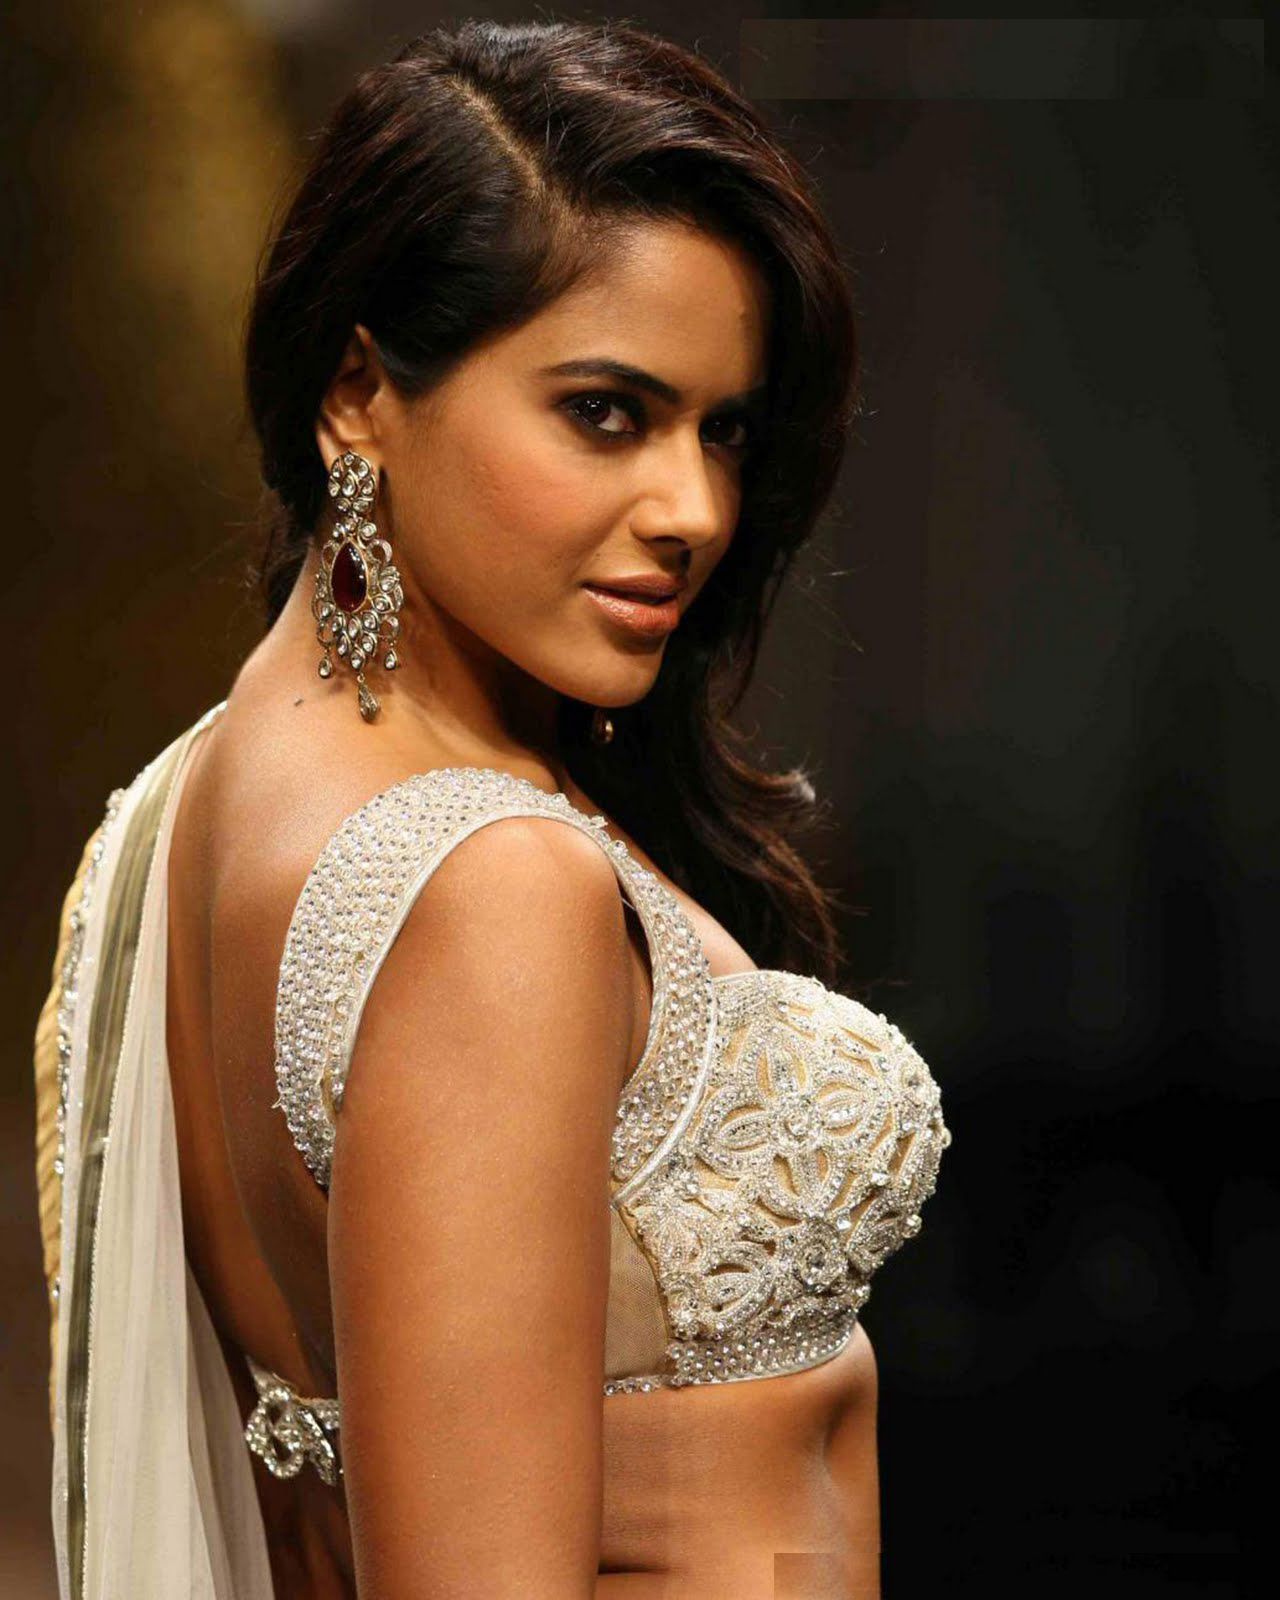 Tamil Actr Team: Sameera Reddy Hot Photos in White Blouse